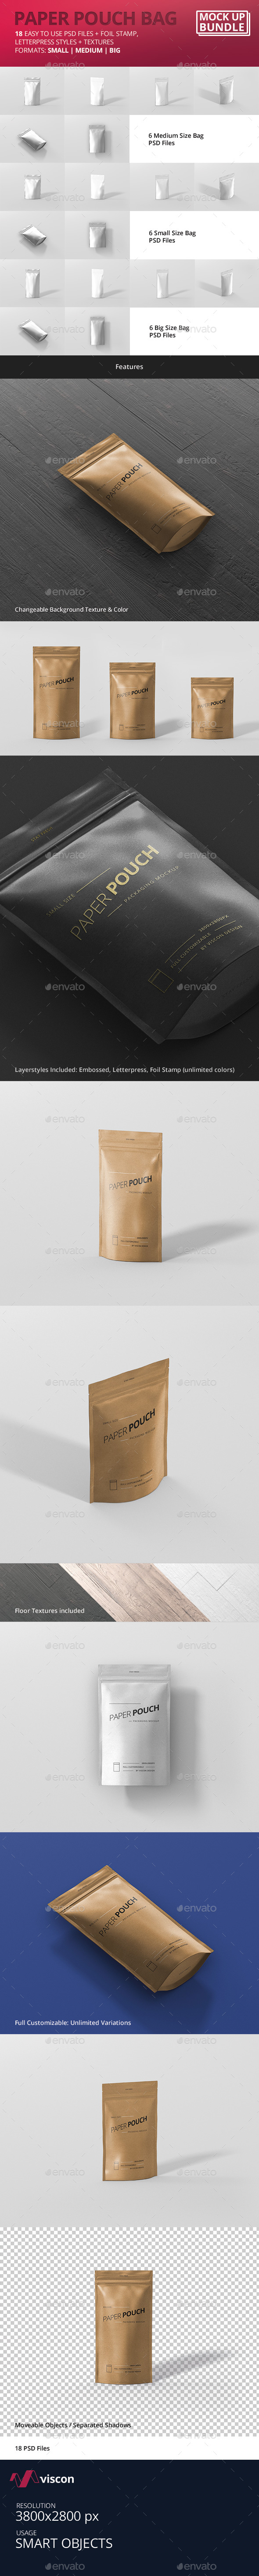 Paper Pouch Bag Mockup Bundle - Food and Drink Packaging